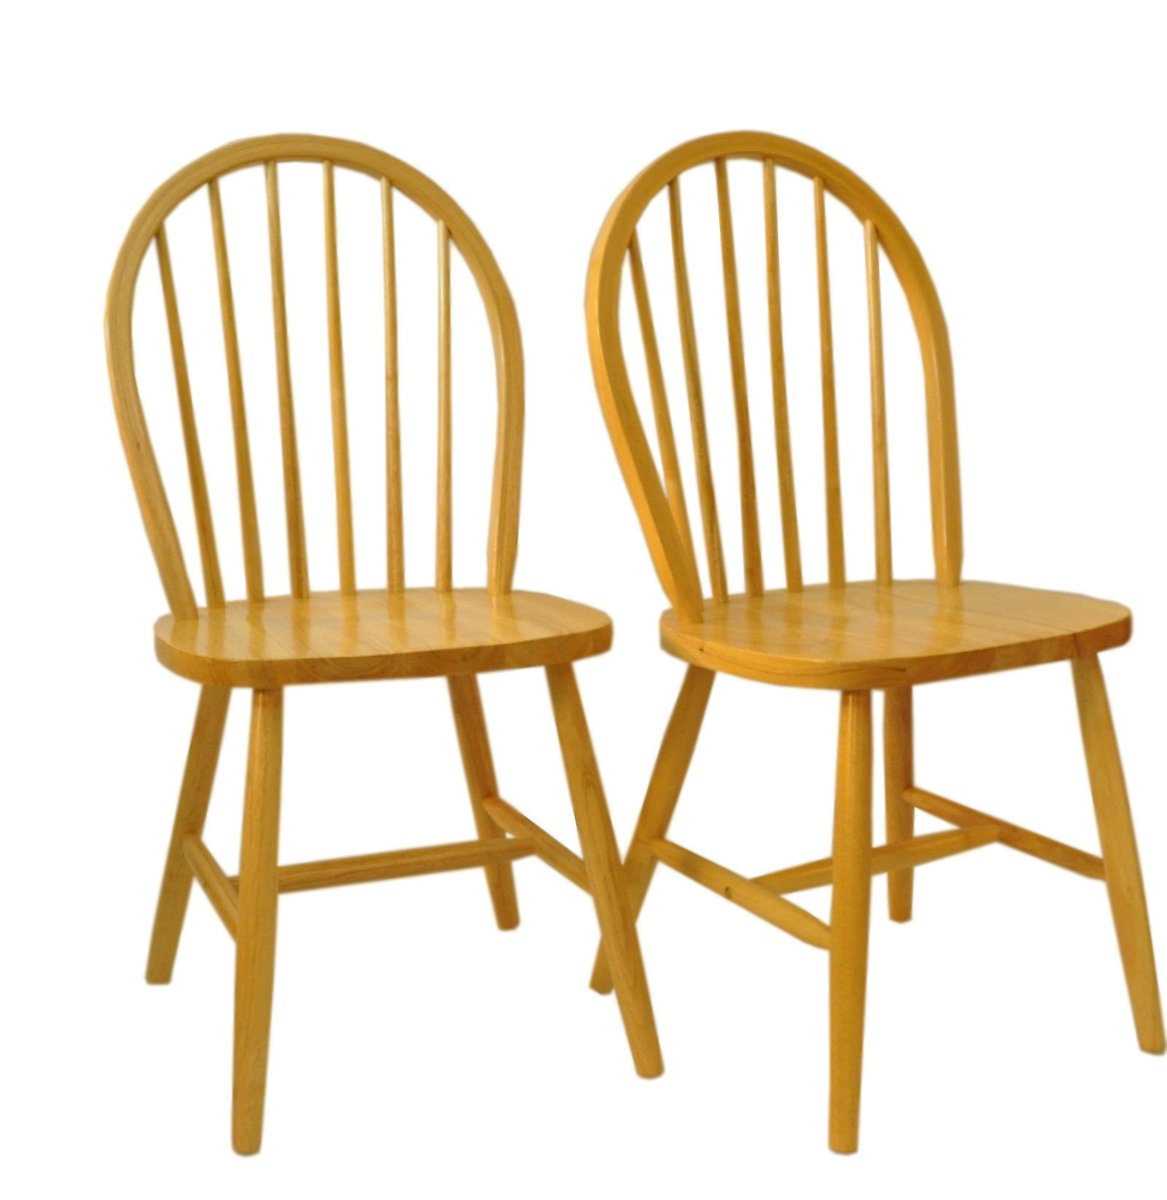 vintage wooden chairs spandex chair covers for metal folding set of 2 sale at pamono